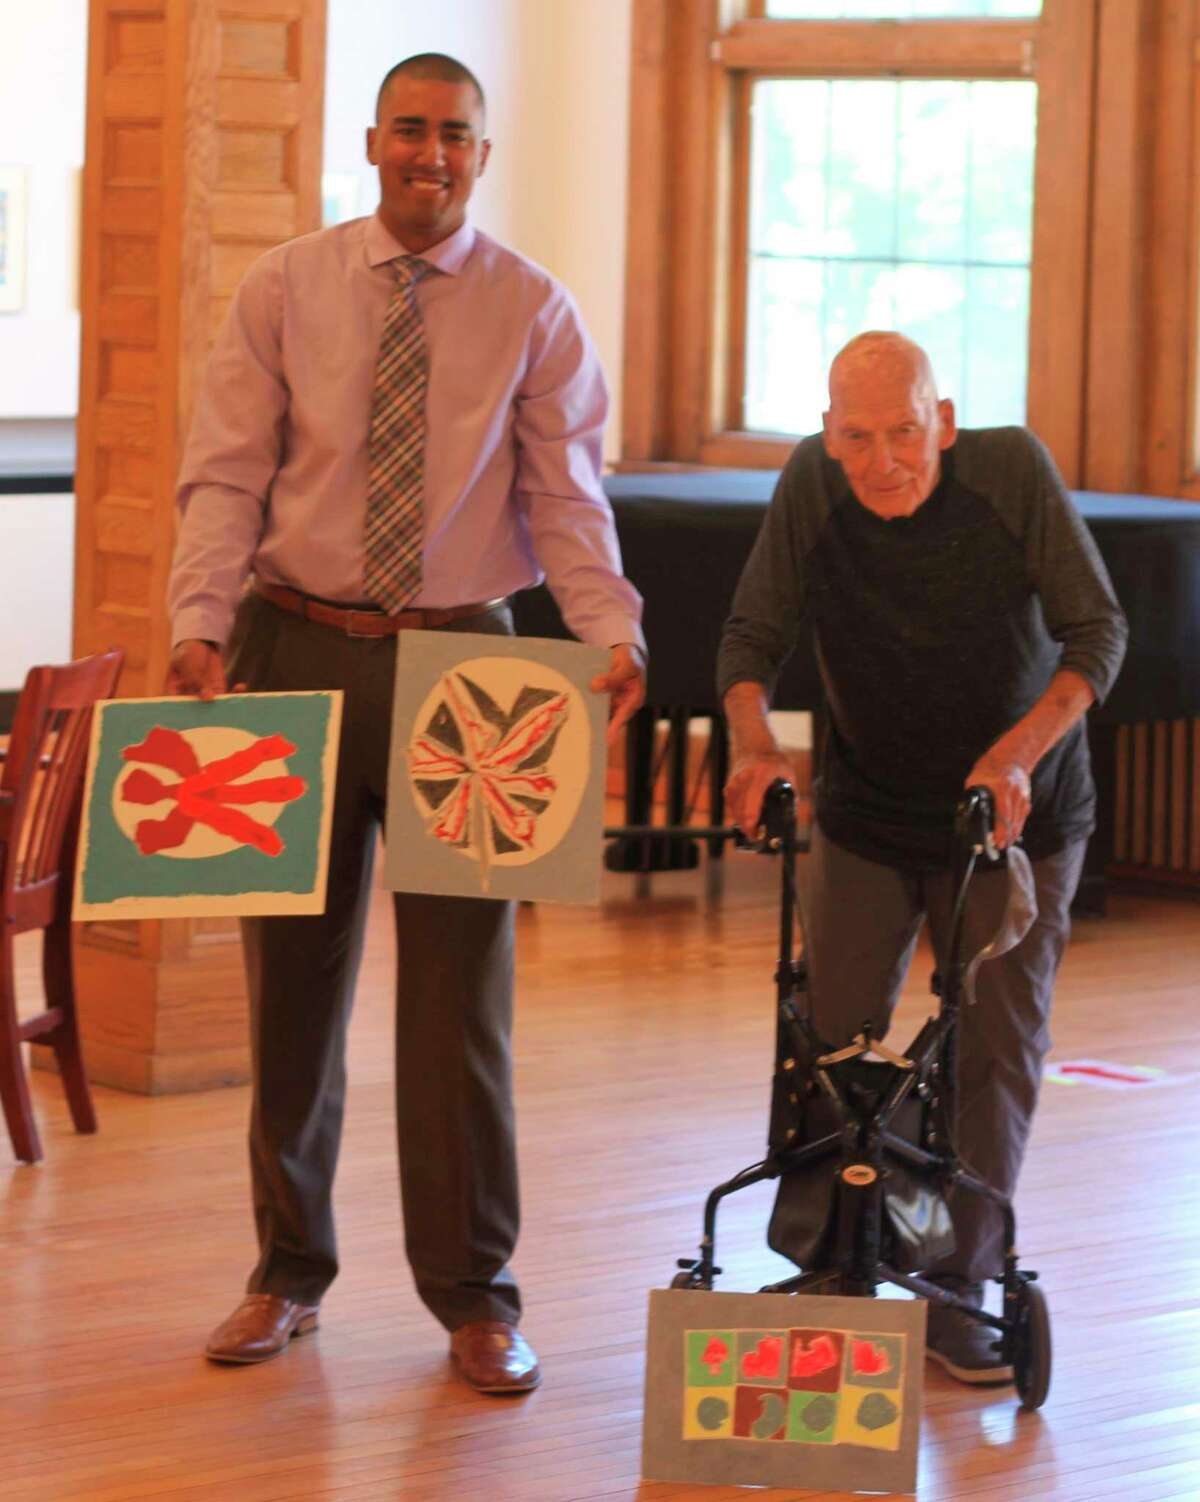 Executive director of the Ramsdell Regional Center for the Arts, Xavier Verna (left) stands with Manistee native and nationally renowned artist Leslie Laskey and three paintings Laskey donated to the RRCA in August 2020. (Kyle Kotecki/News Advocate)